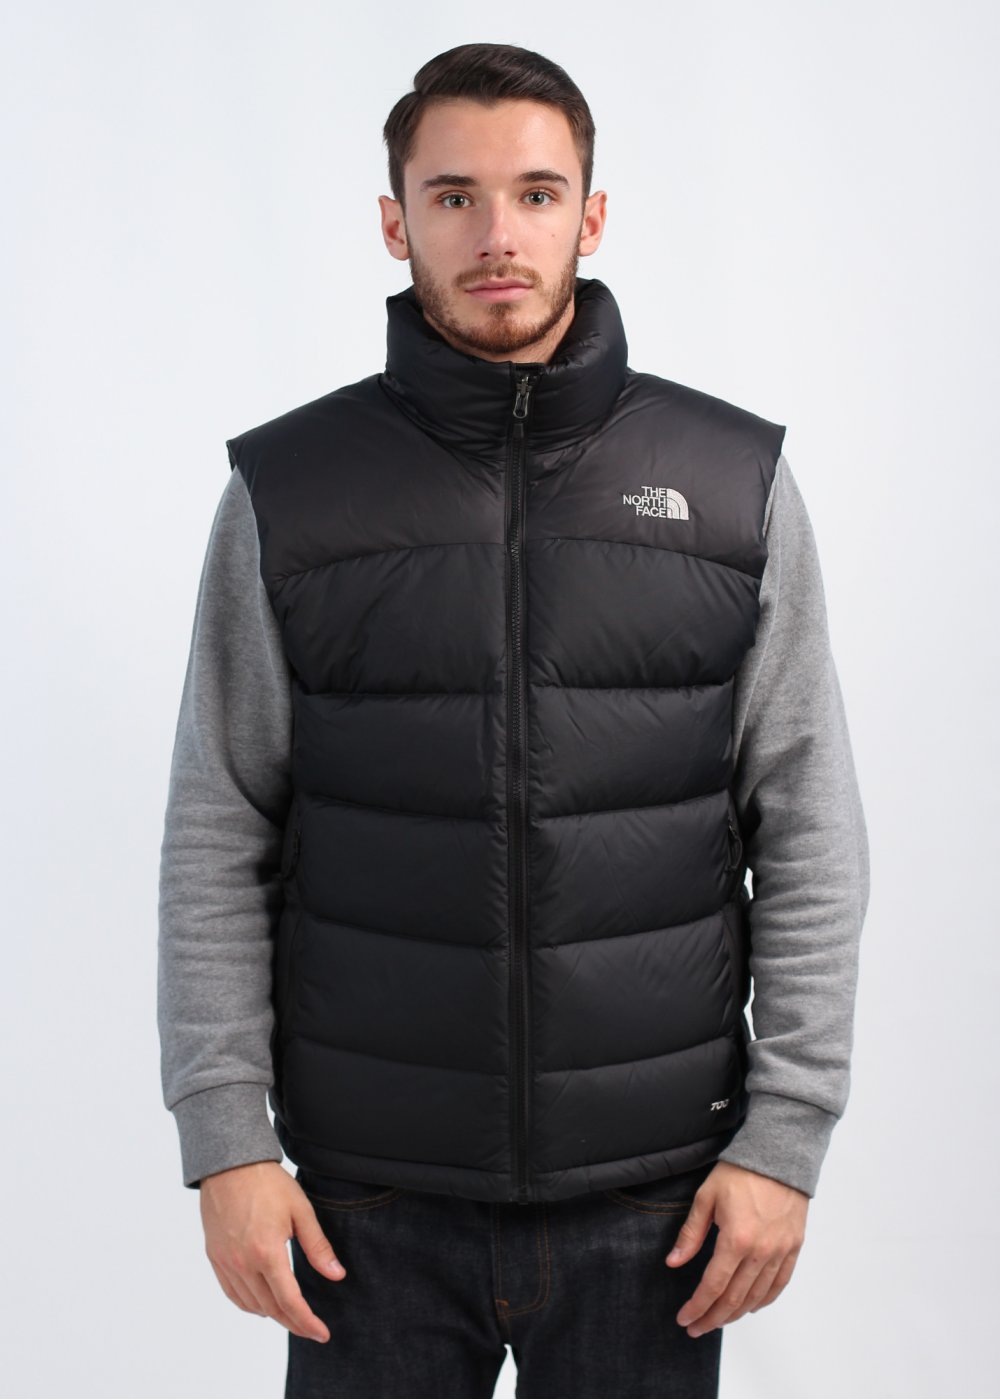 the north face nuptse 2 vest gilet black. Black Bedroom Furniture Sets. Home Design Ideas